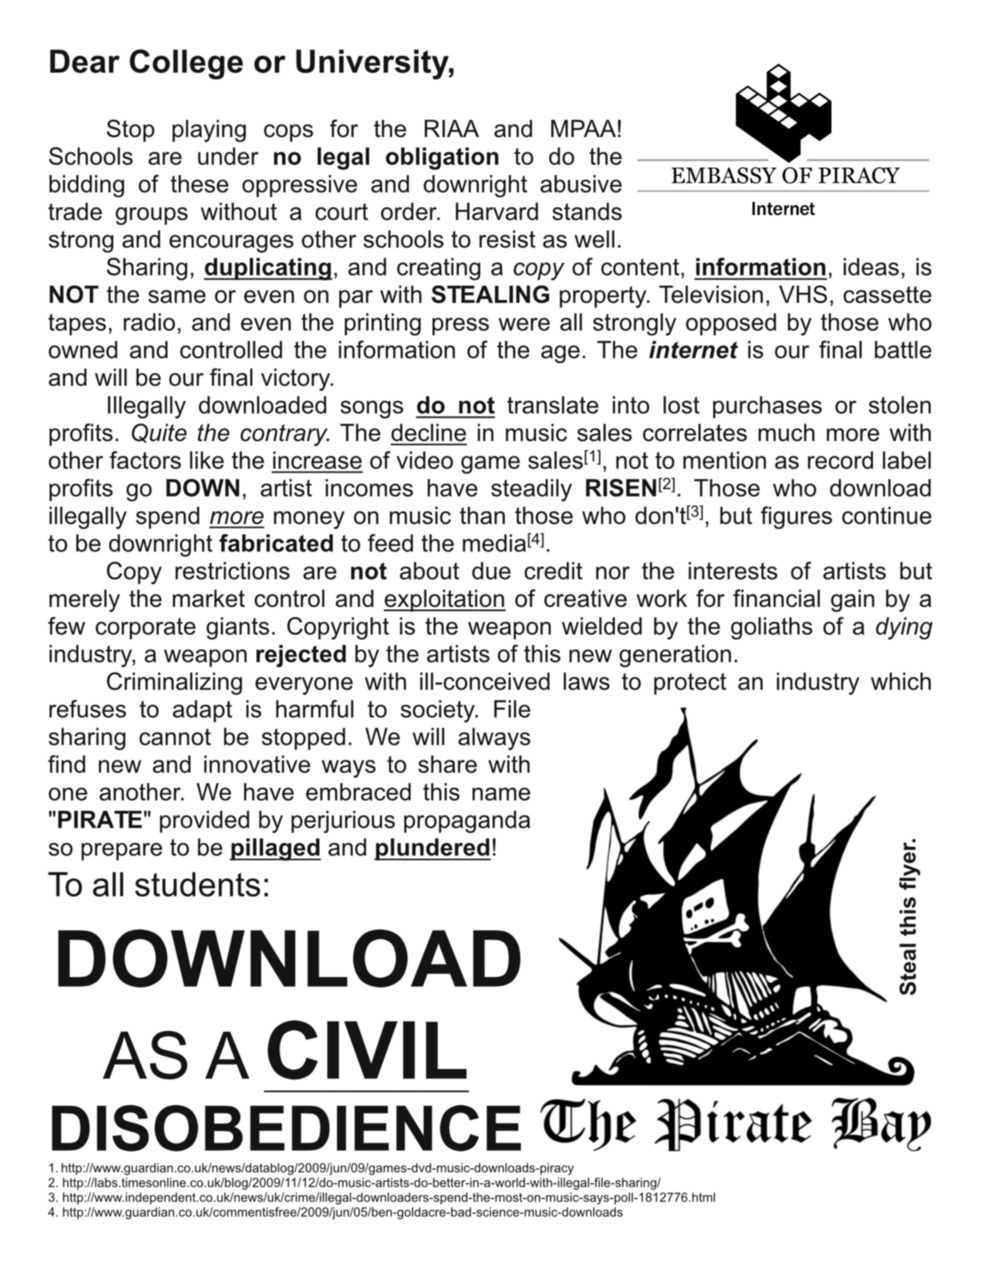 A flier targeting students